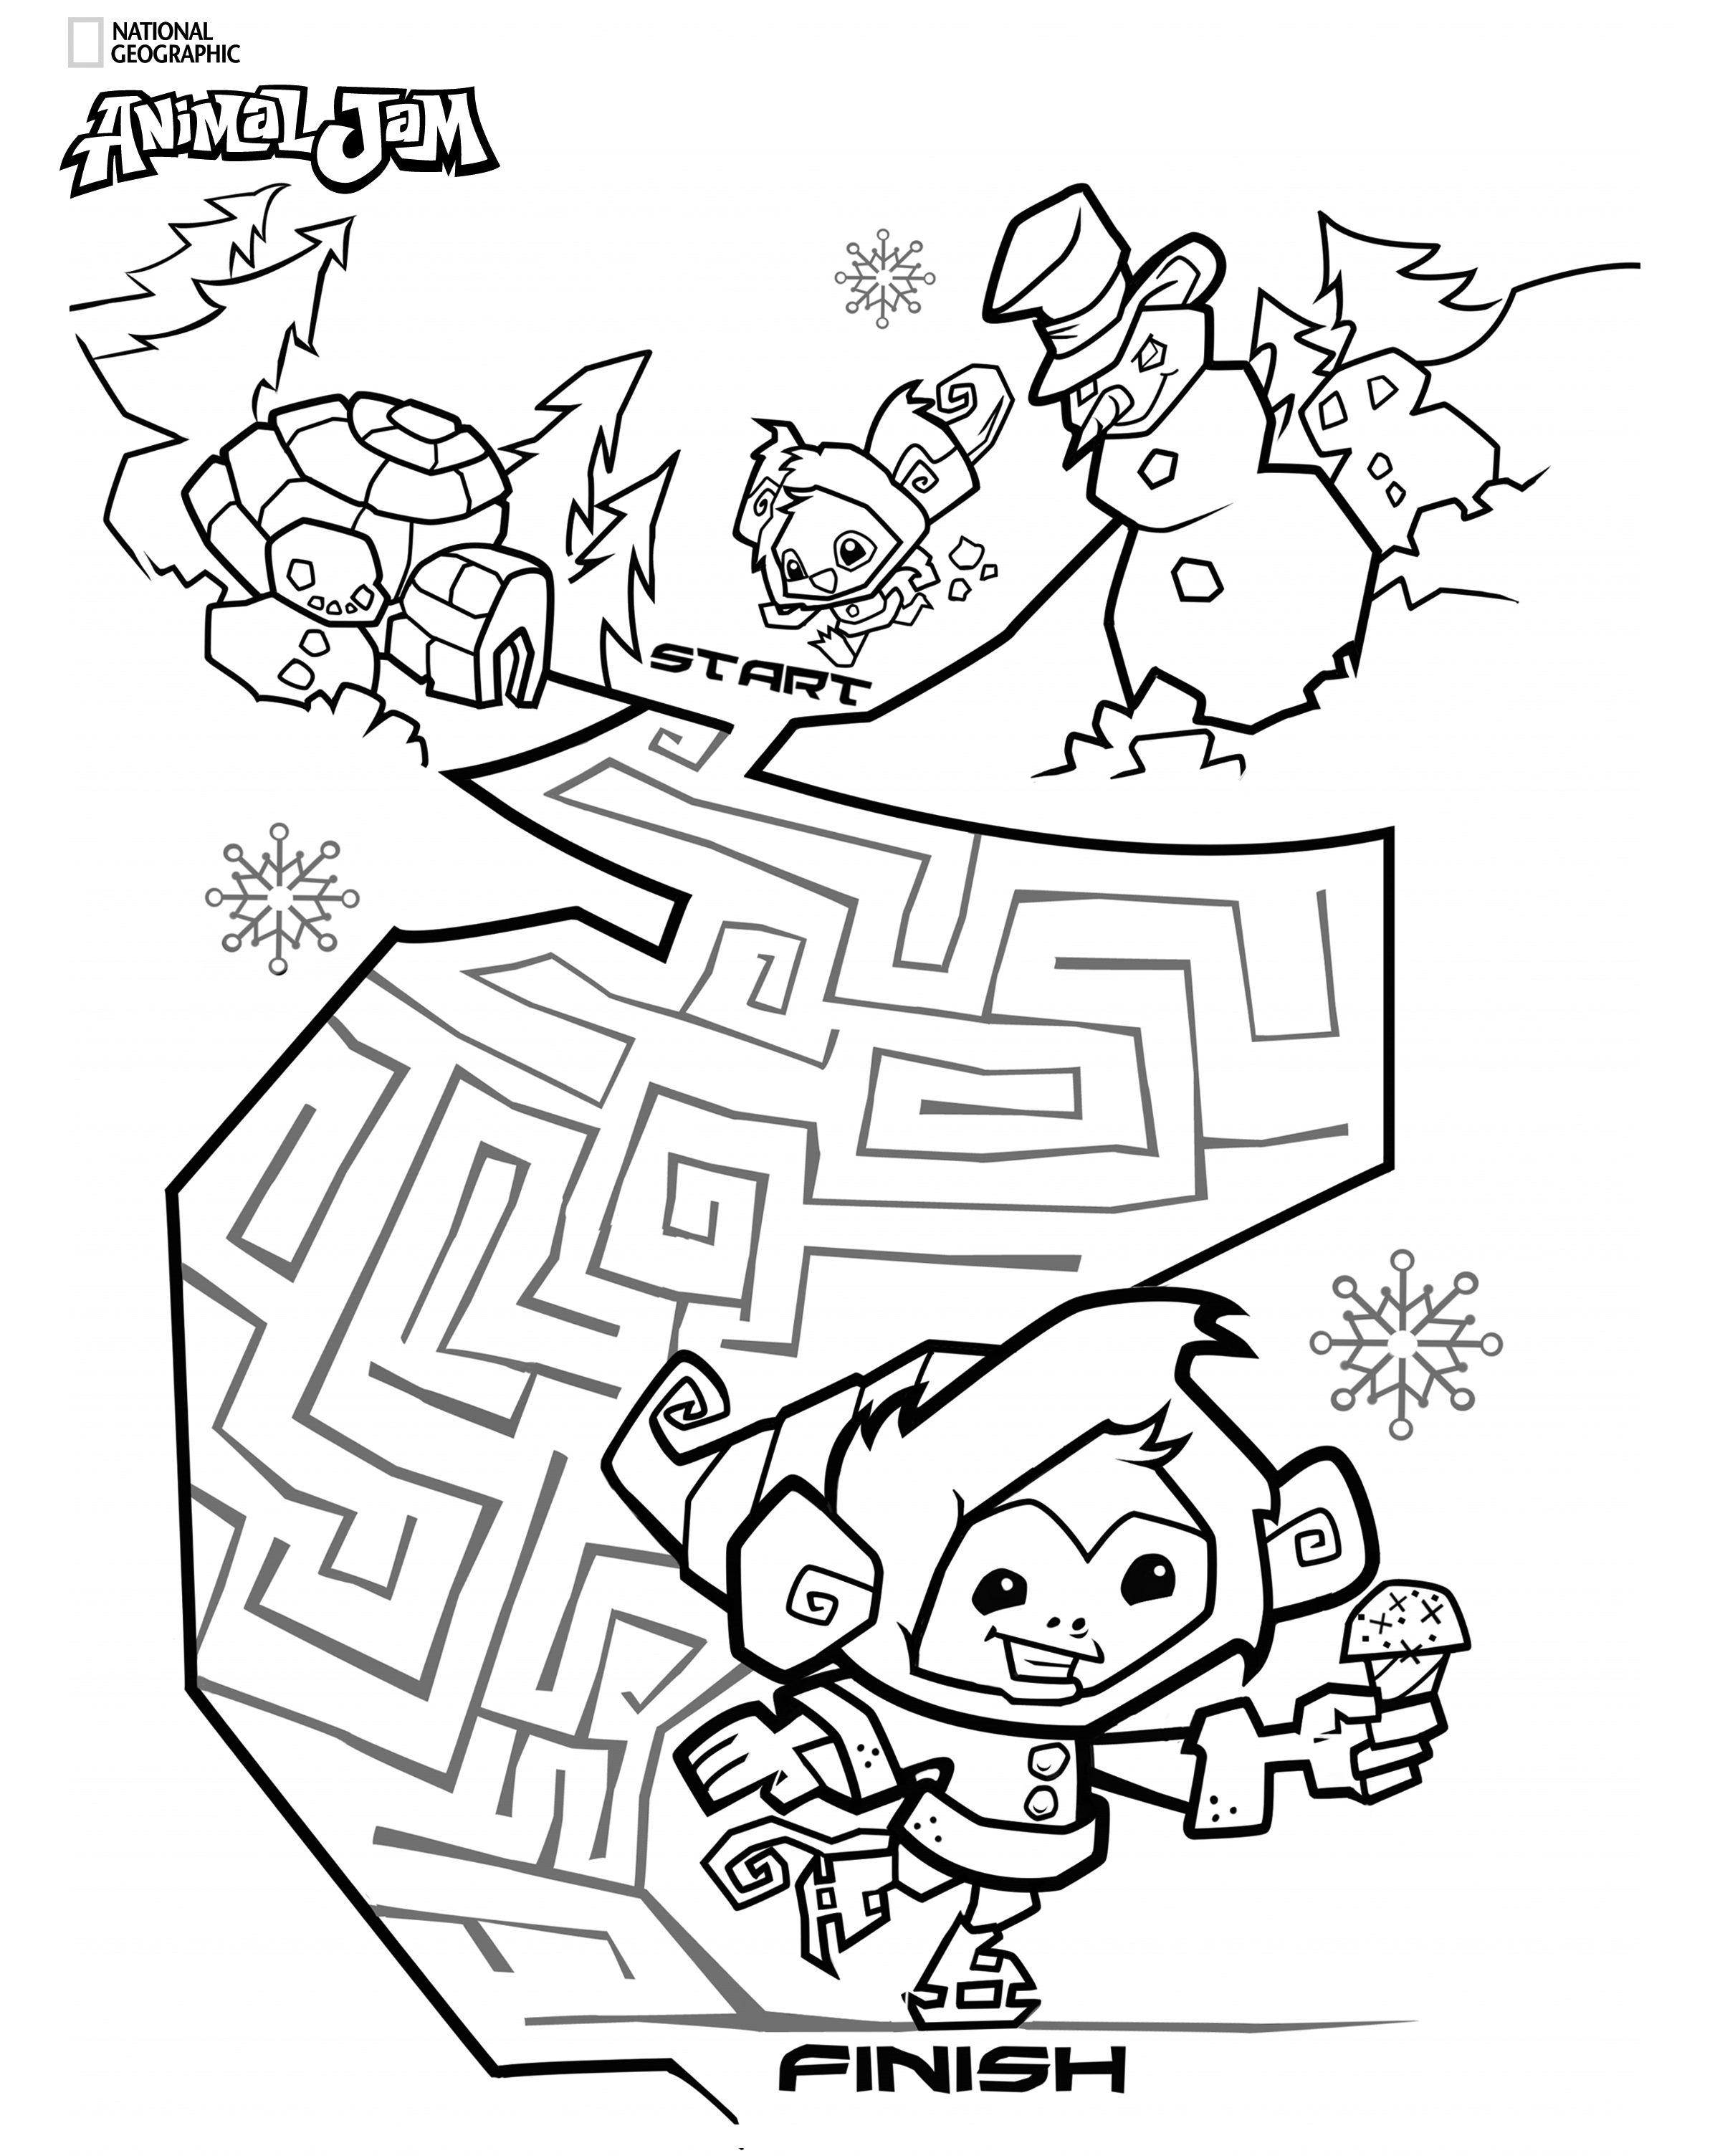 Coloring pages animal jam - Looking For Something To Do After The Kids Have Maxed Out Their Screen Time Print Jasmine Partyanimal Jamletter Csomething To Domazecoloring Pagesthe